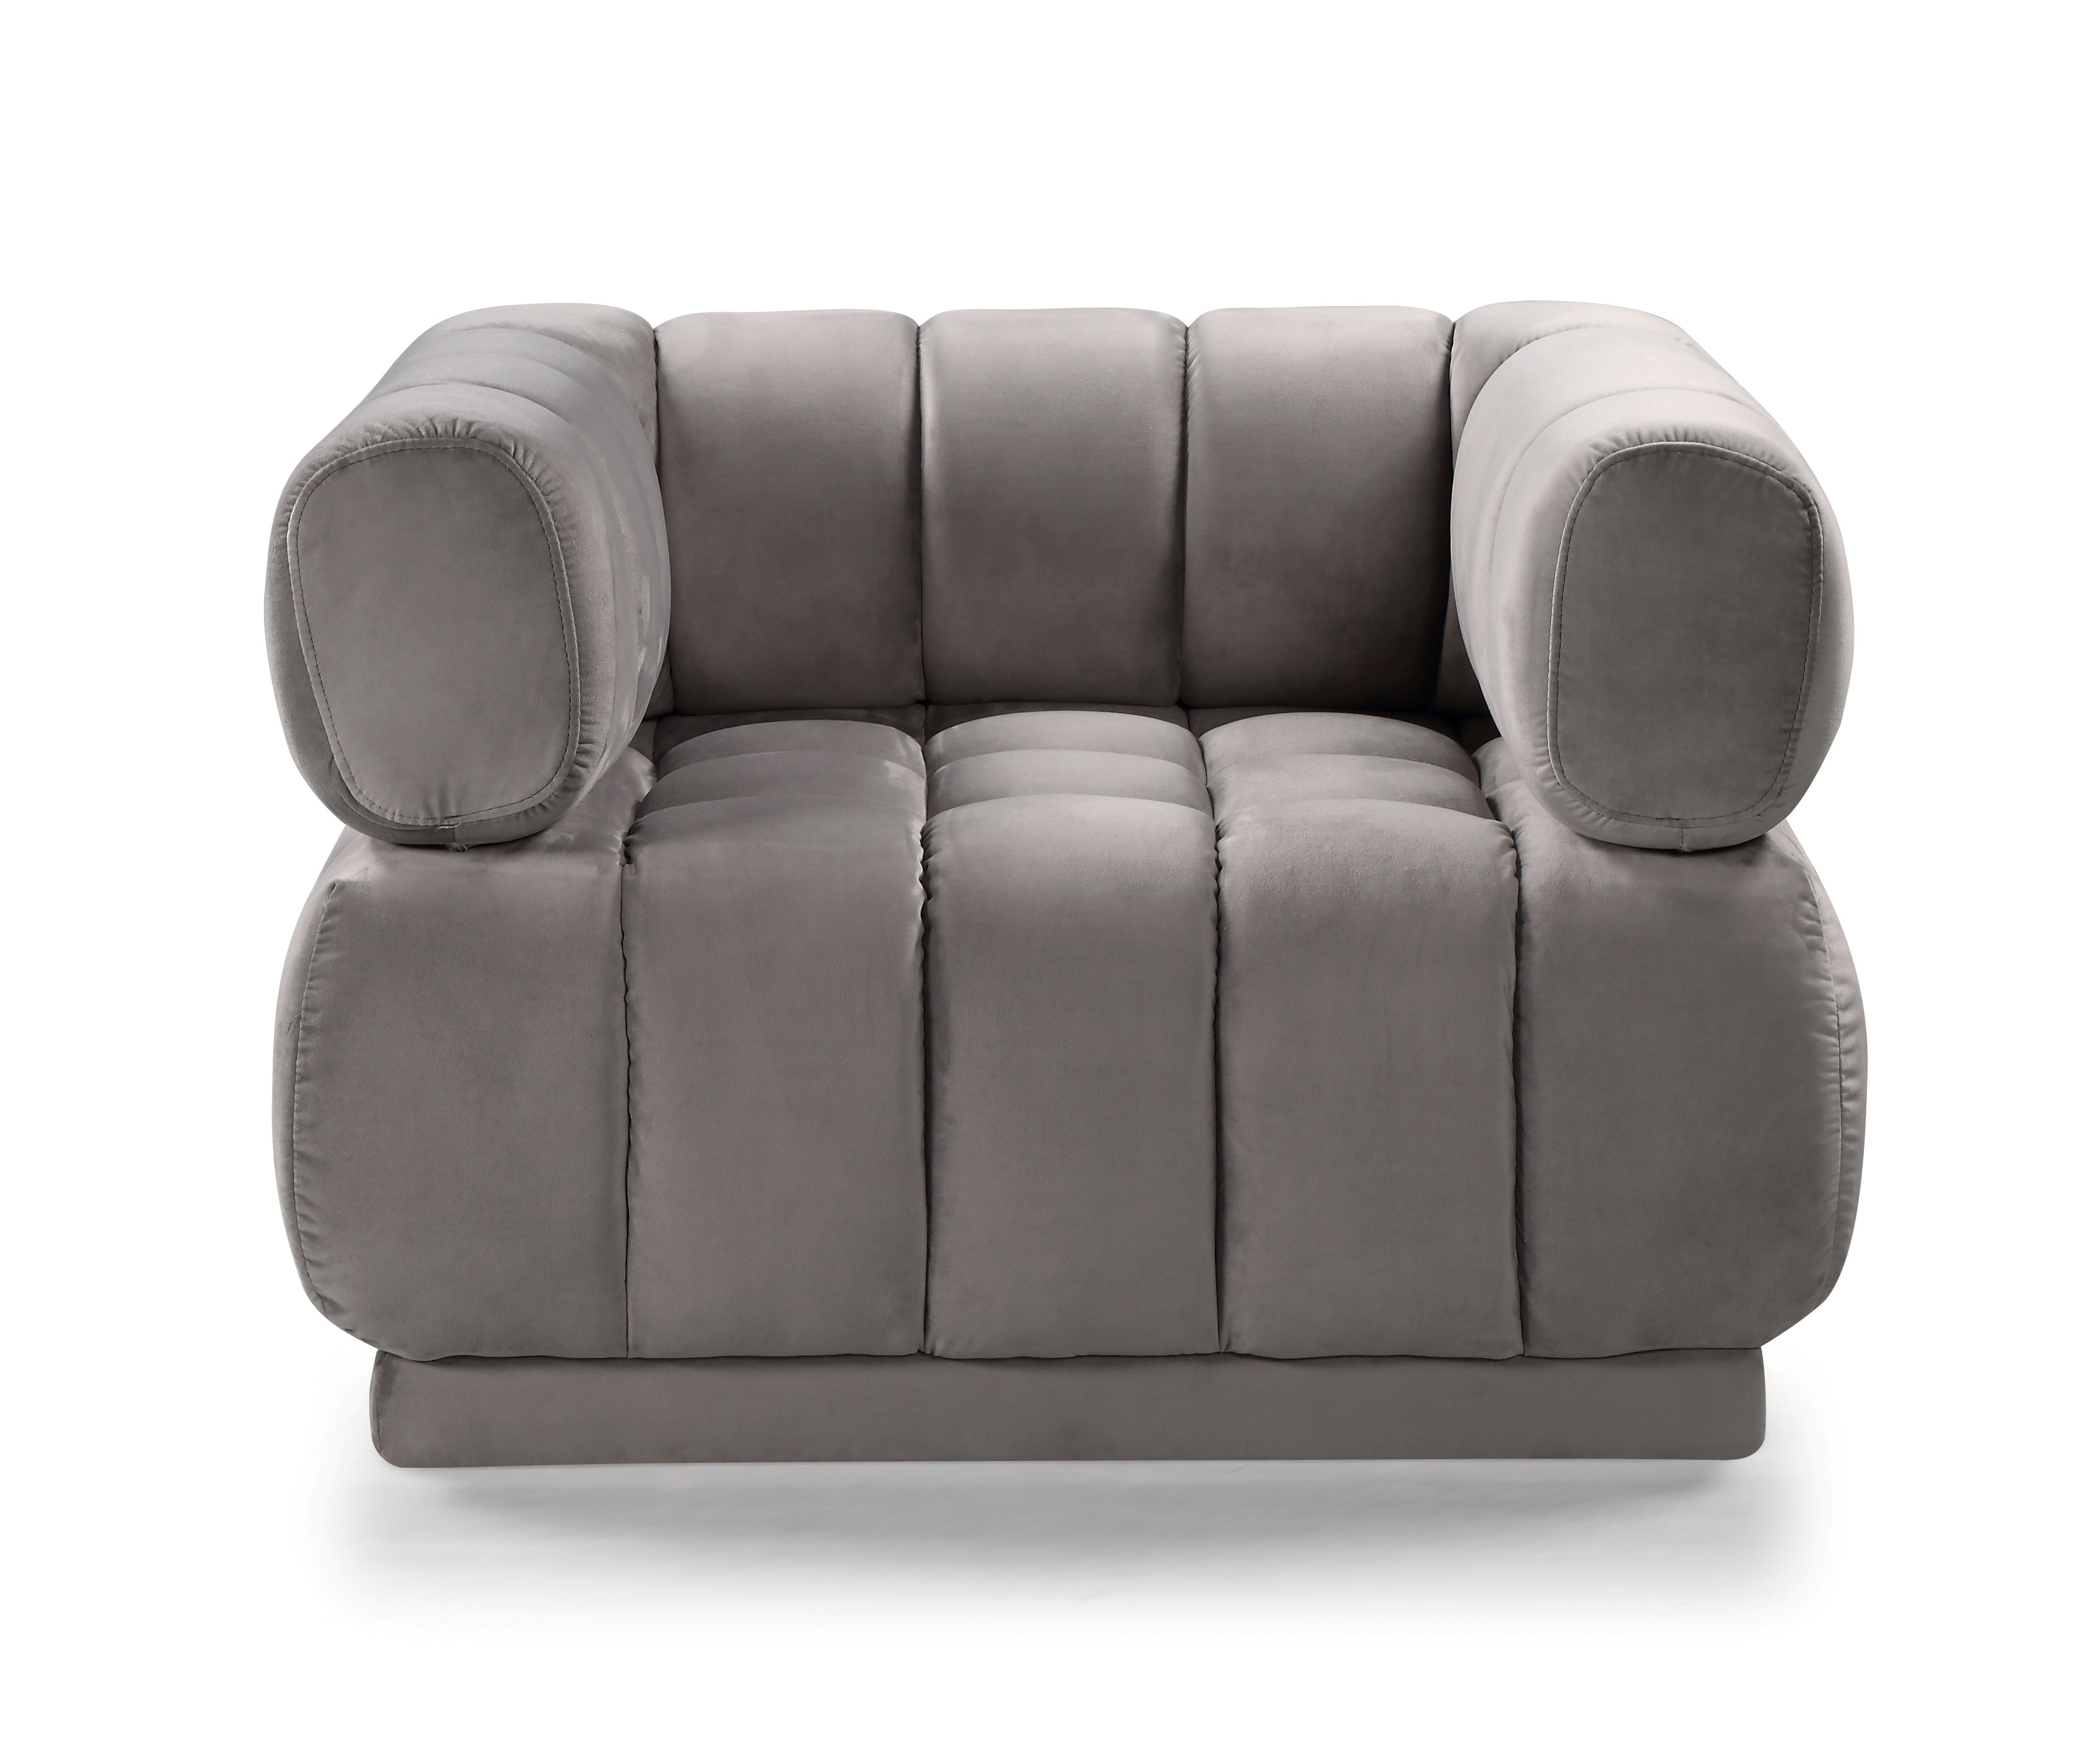 Awesome Chic Home Quebec Grey Velvet Tufted Seat Club Chair Creativecarmelina Interior Chair Design Creativecarmelinacom